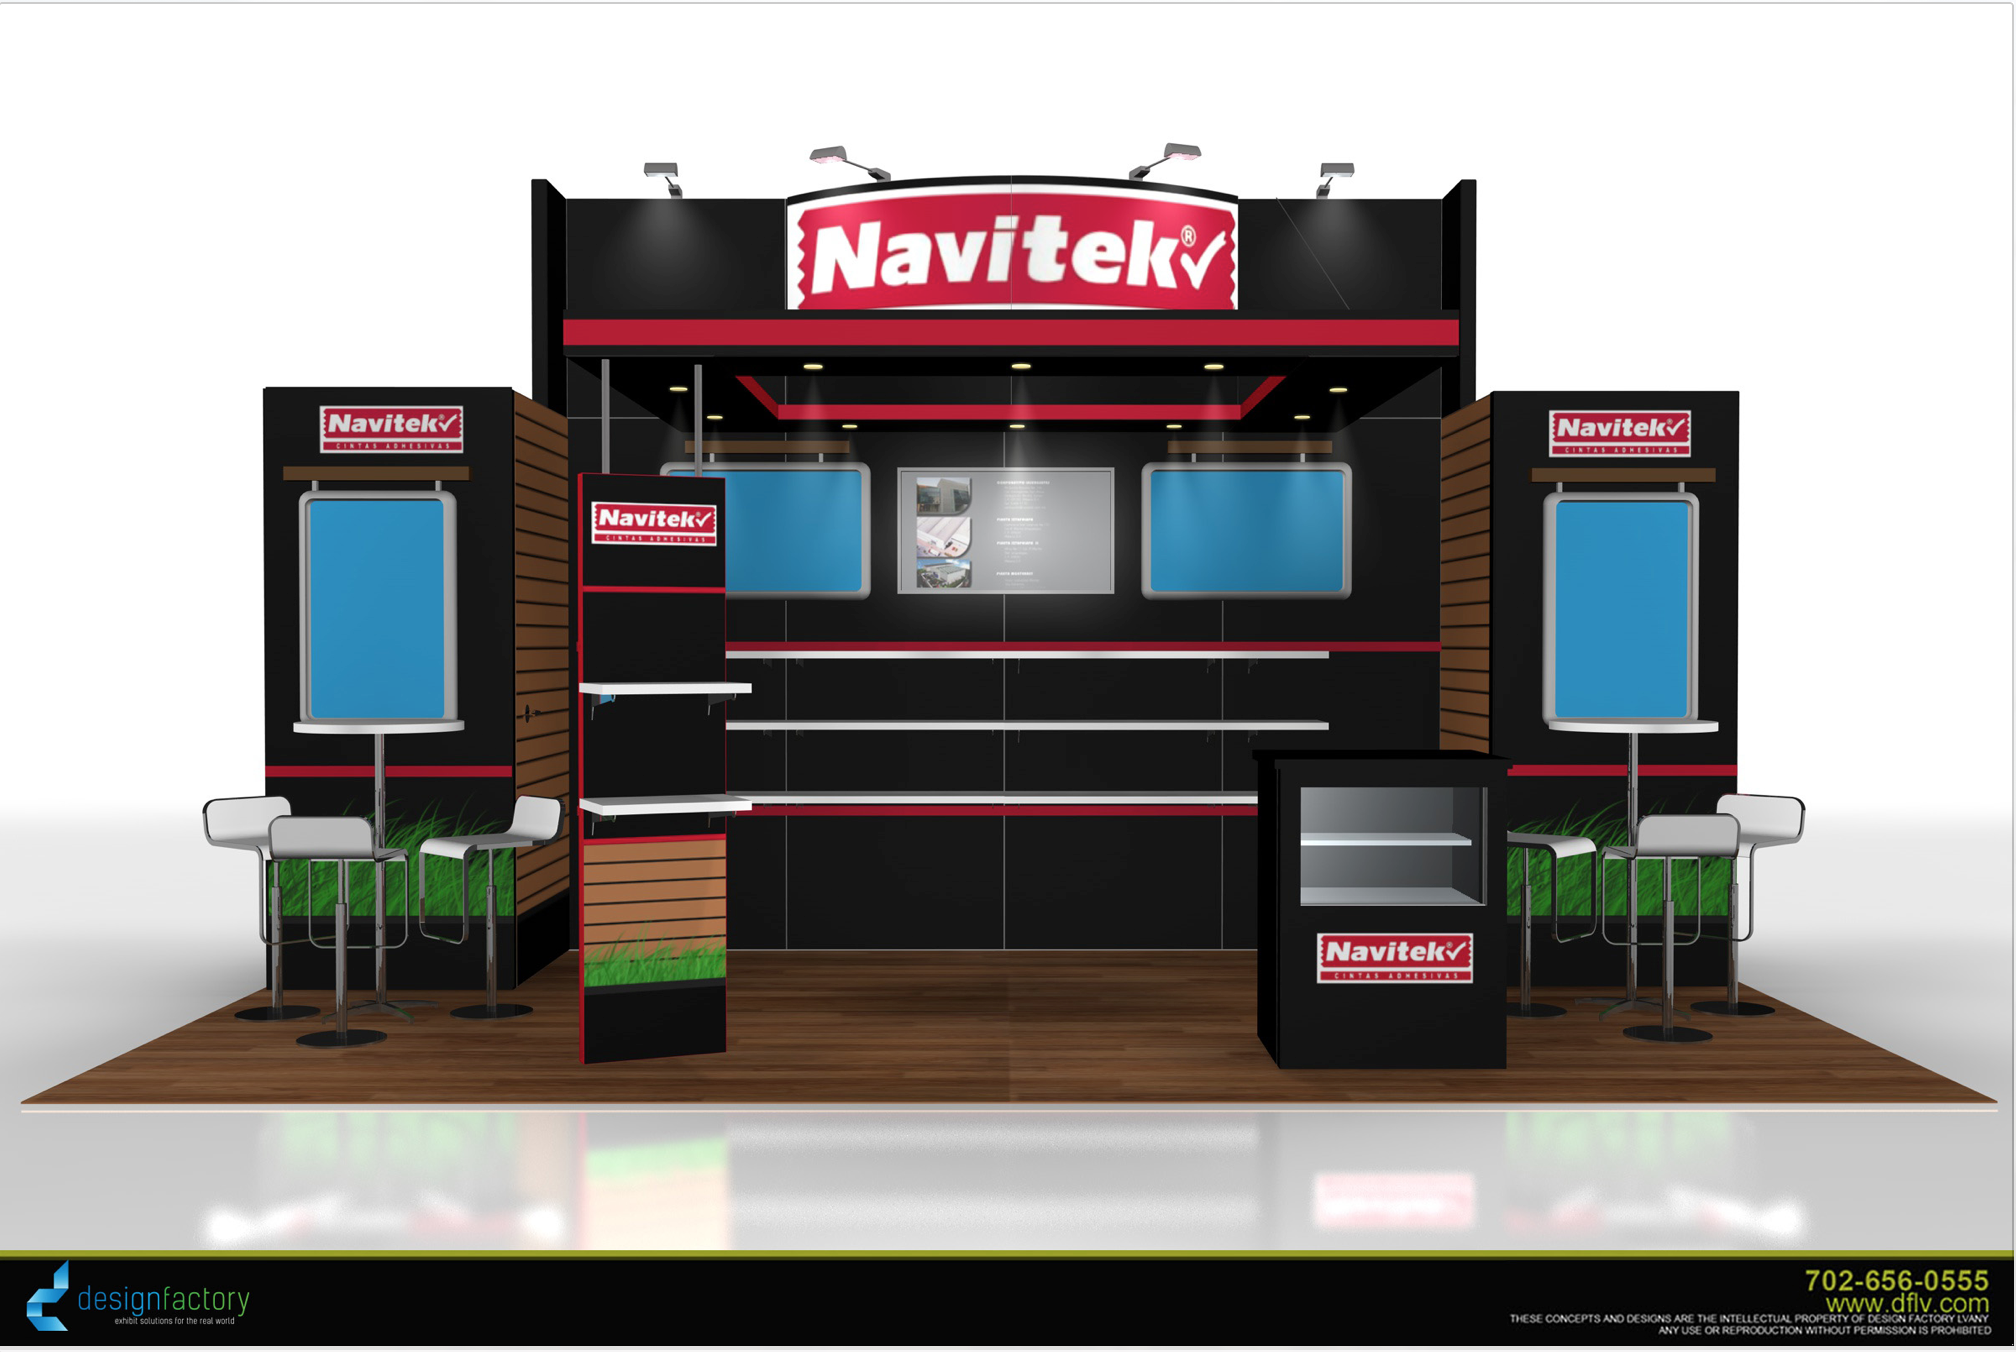 NAVITEK-RENTAL-EXHIBIT-1